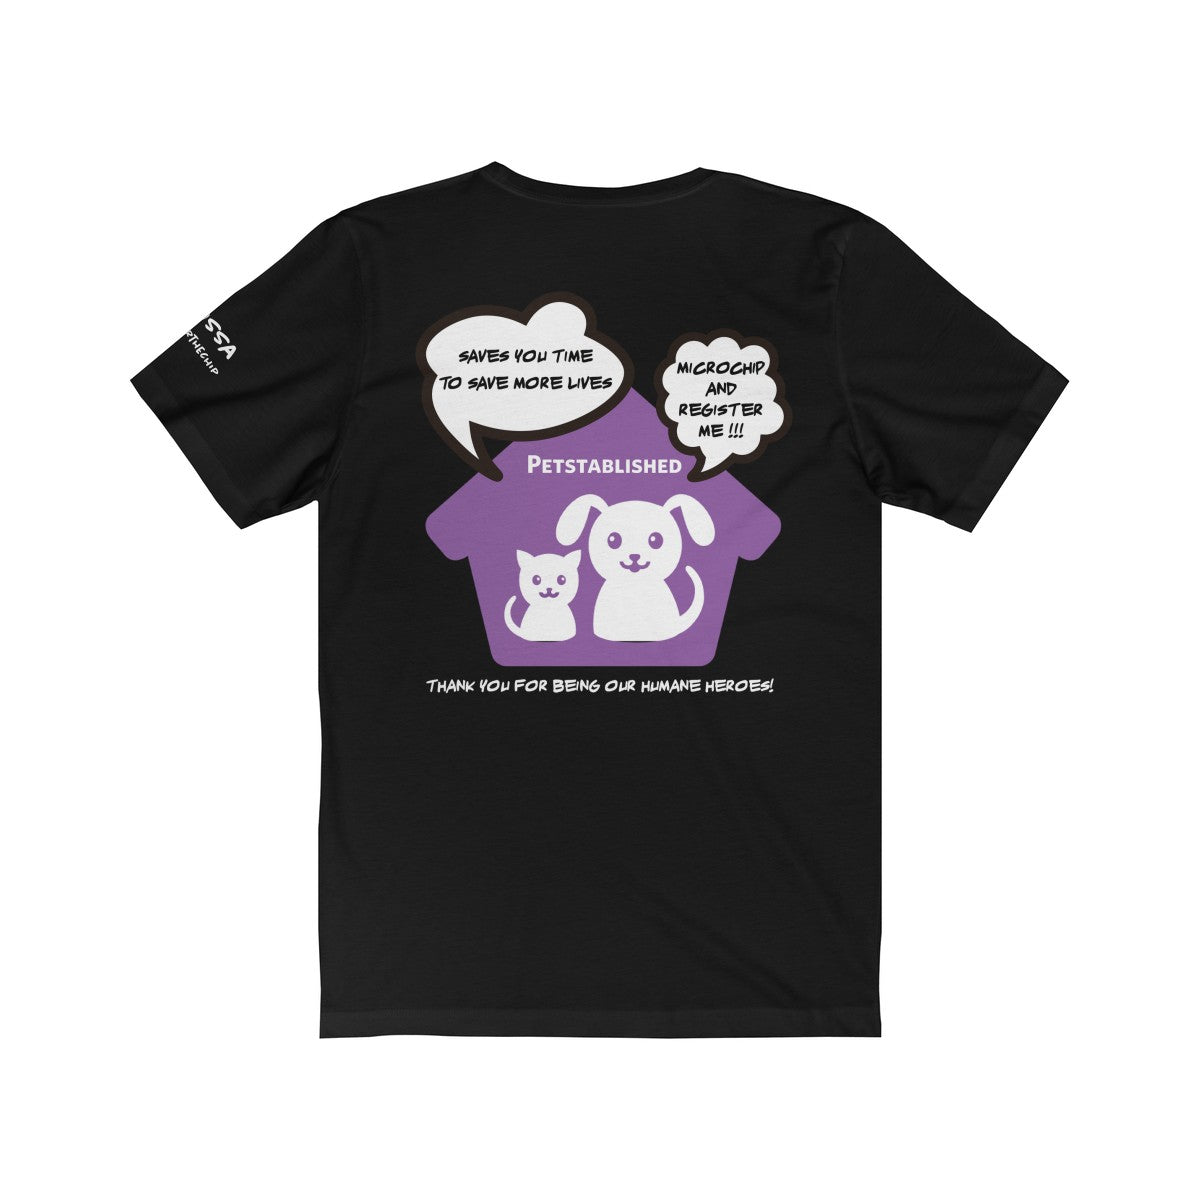 Expo Tee Paws Up - Melissa - Allthingsfrenchie LLC